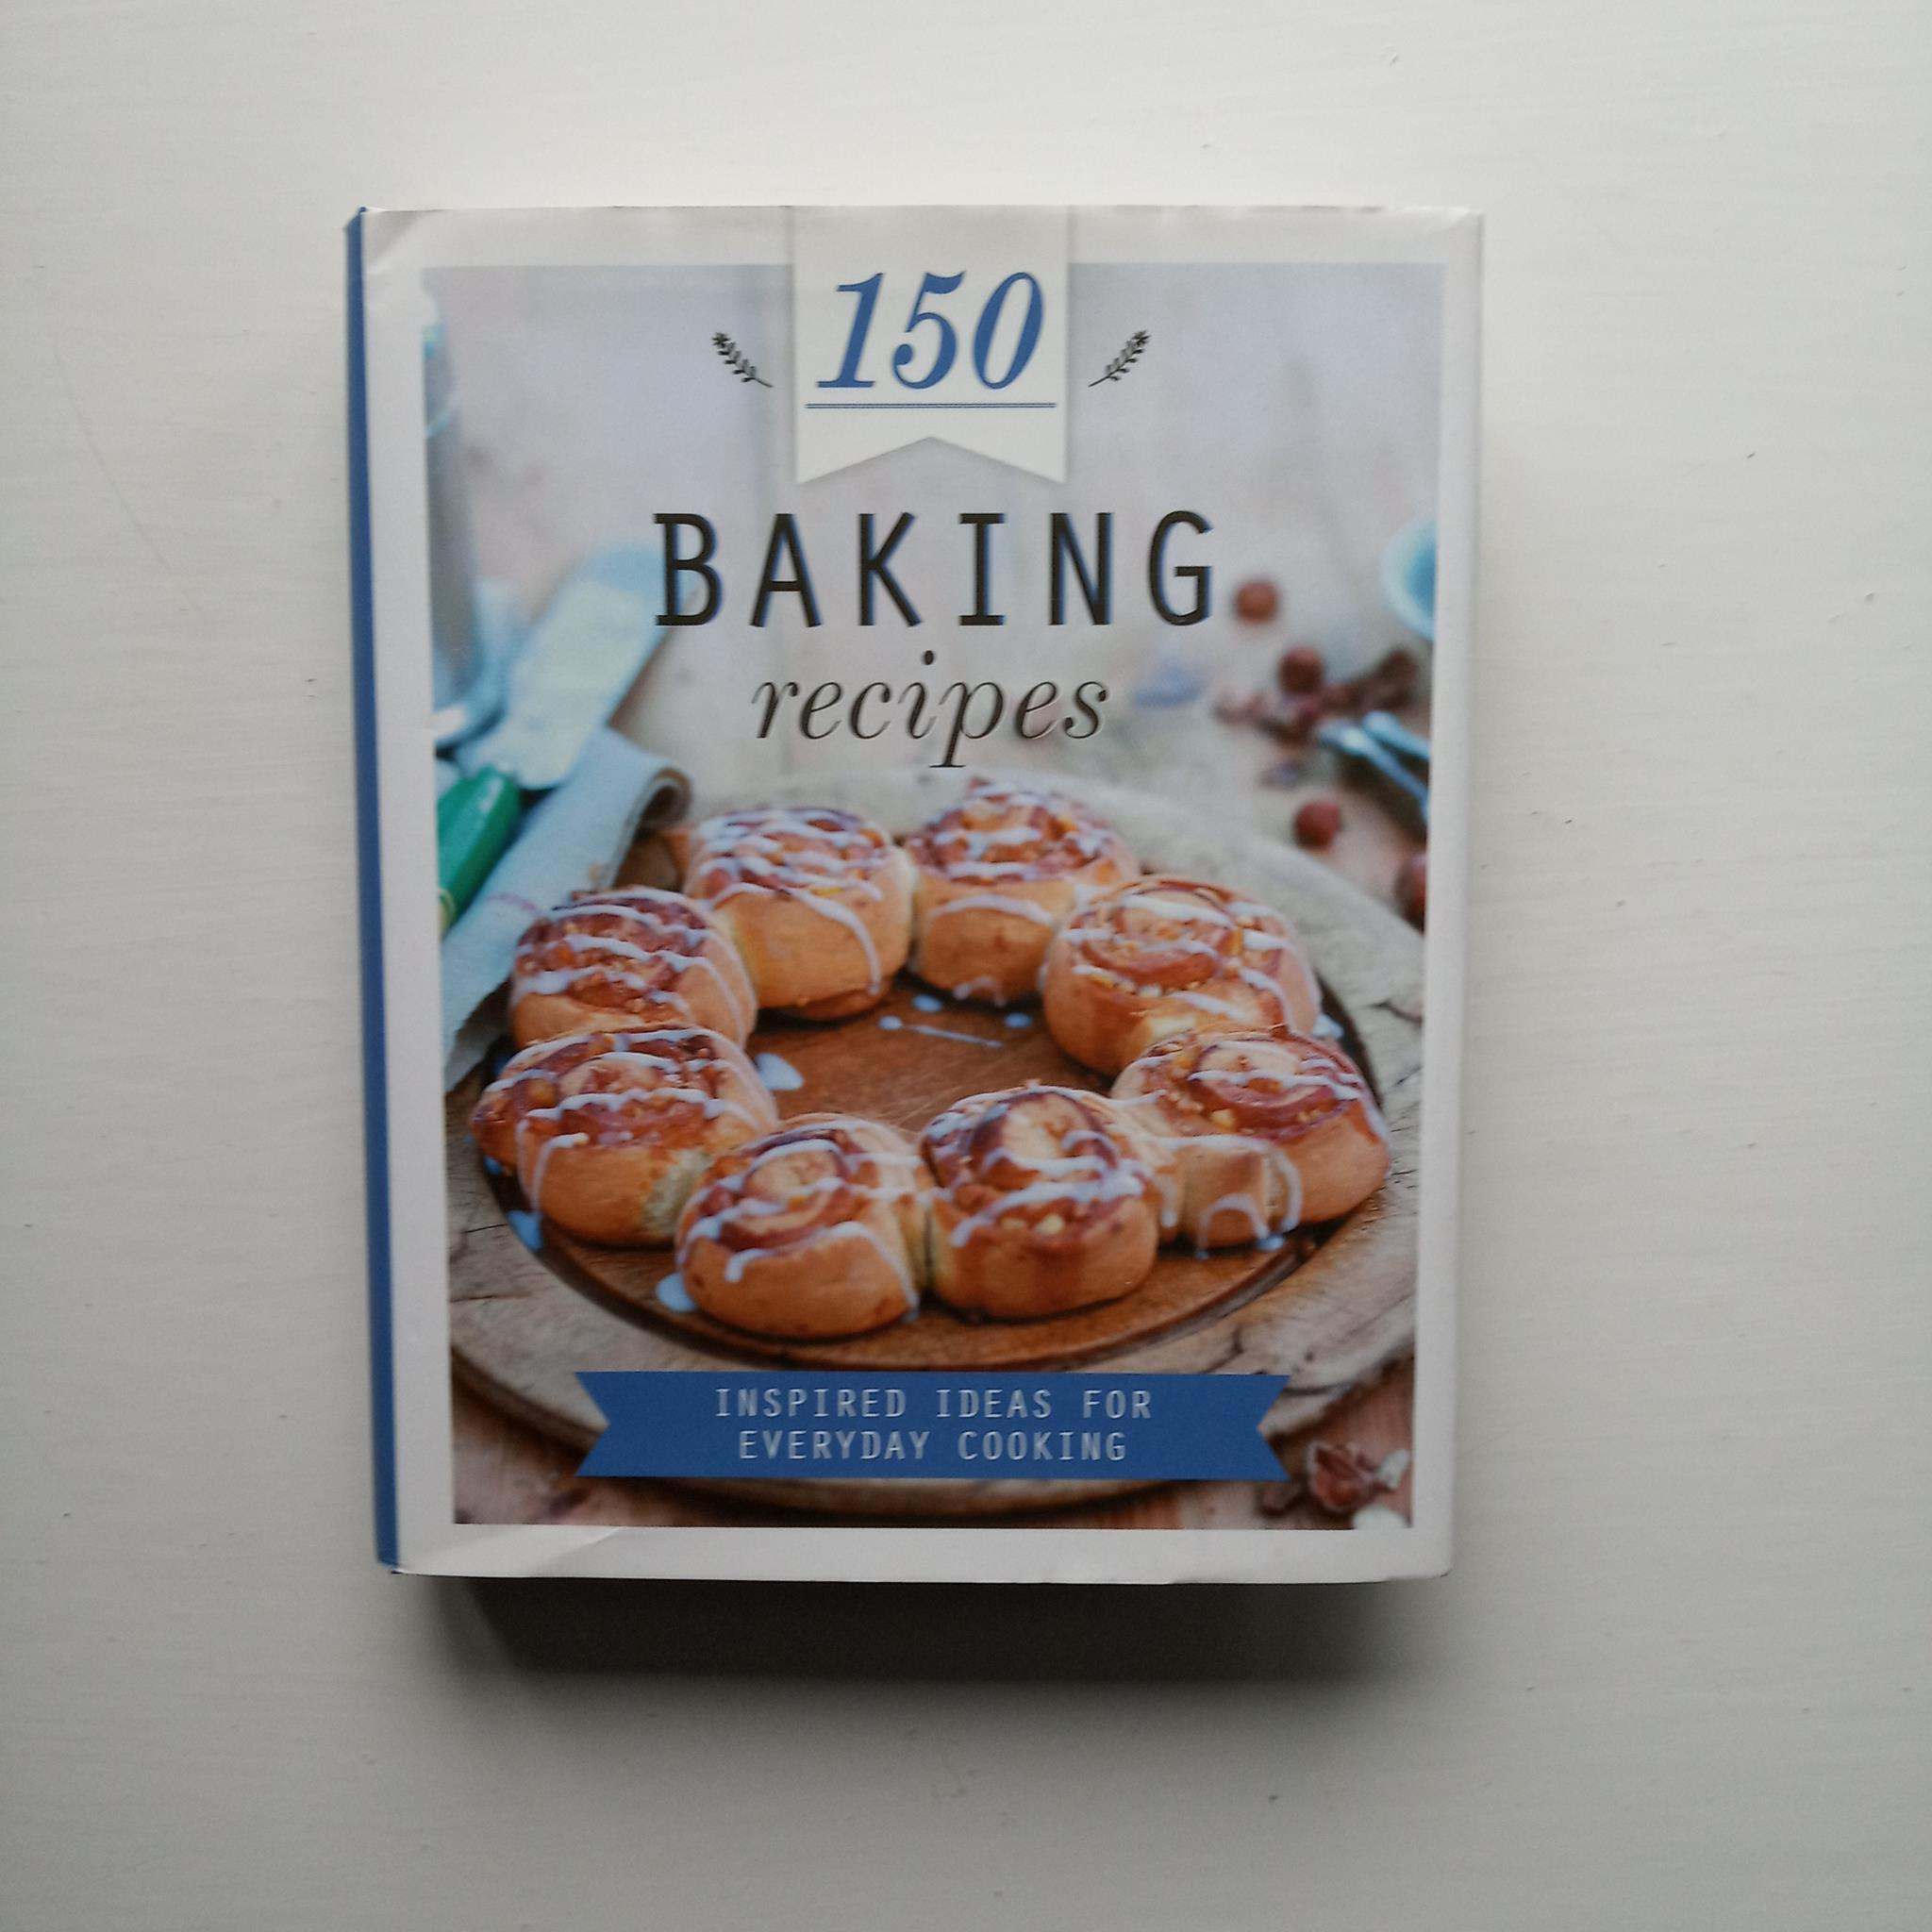 150 Baking Recipes by Uncredited